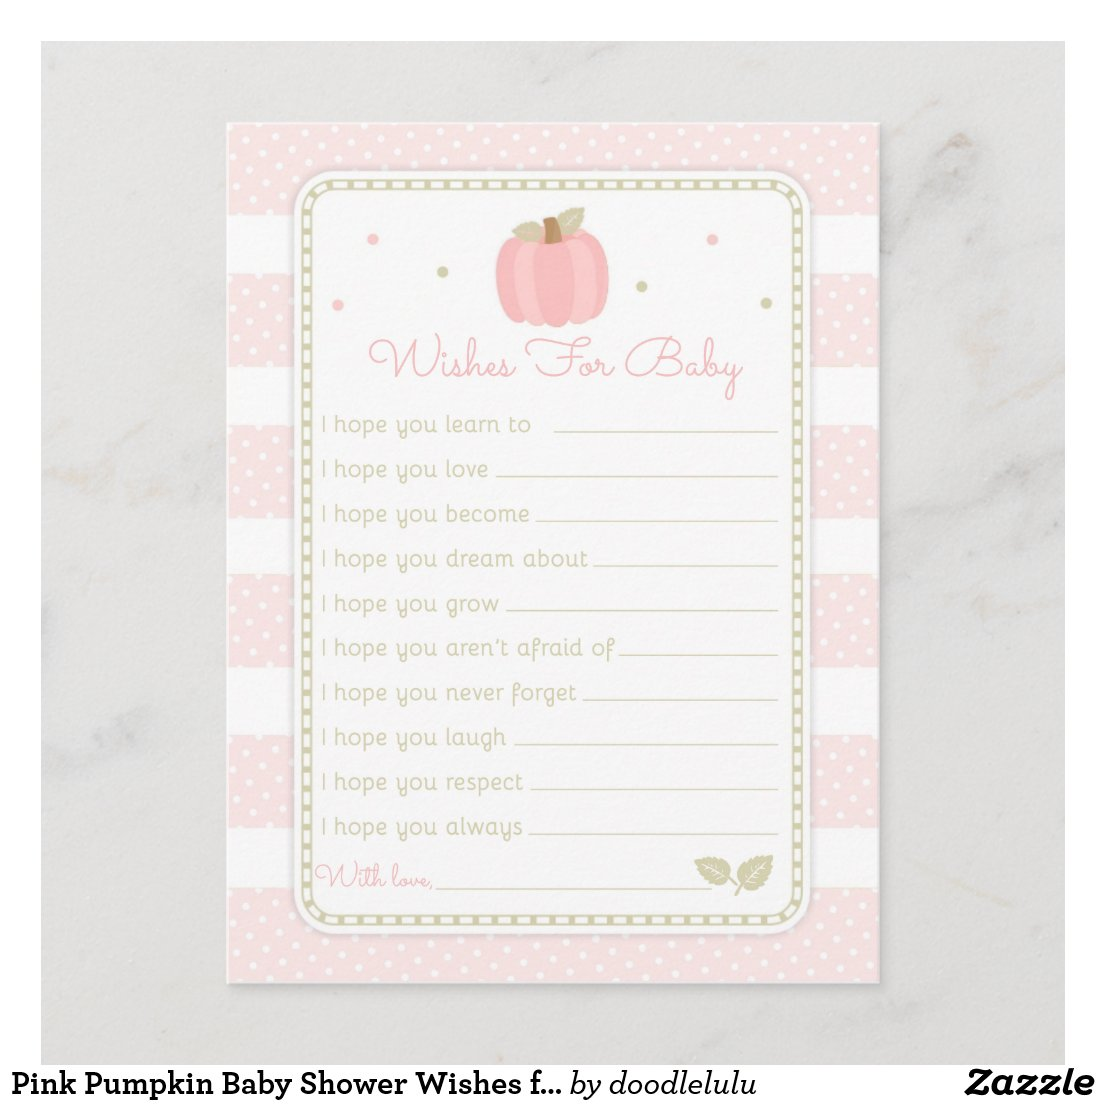 Pink Pumpkin Baby Shower Wishes for Baby Advice Card